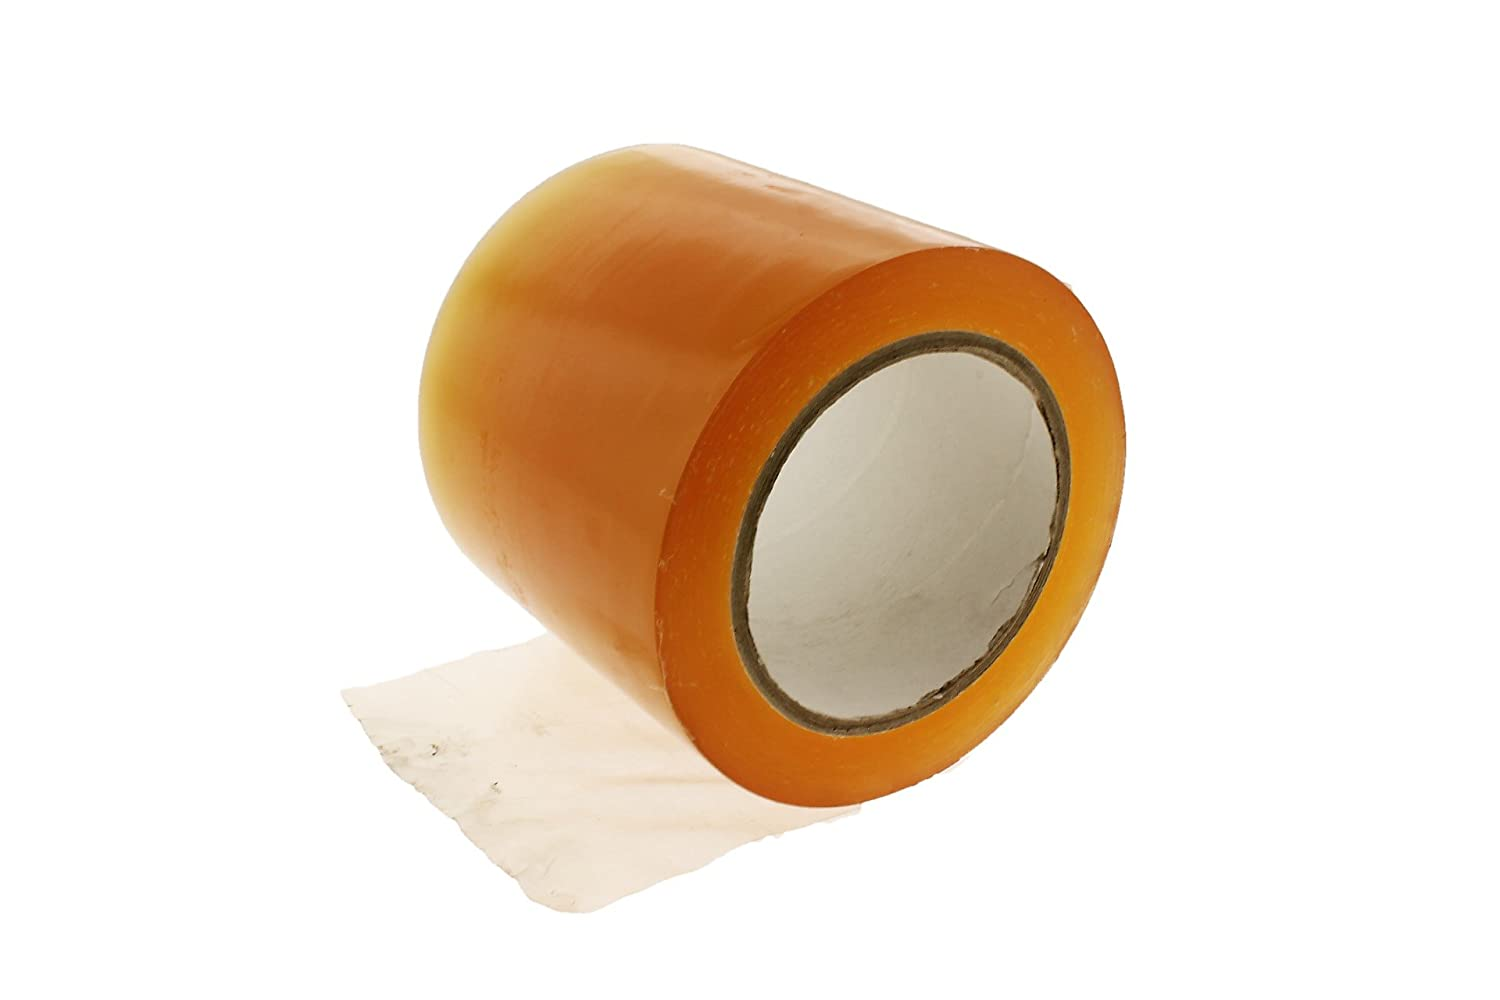 4 General Purpose Clear Insulated Adhesive PVC Vinyl Sealing Coding Marking Electrical Tape 3.76 in 96MM 36 yard 7 mil